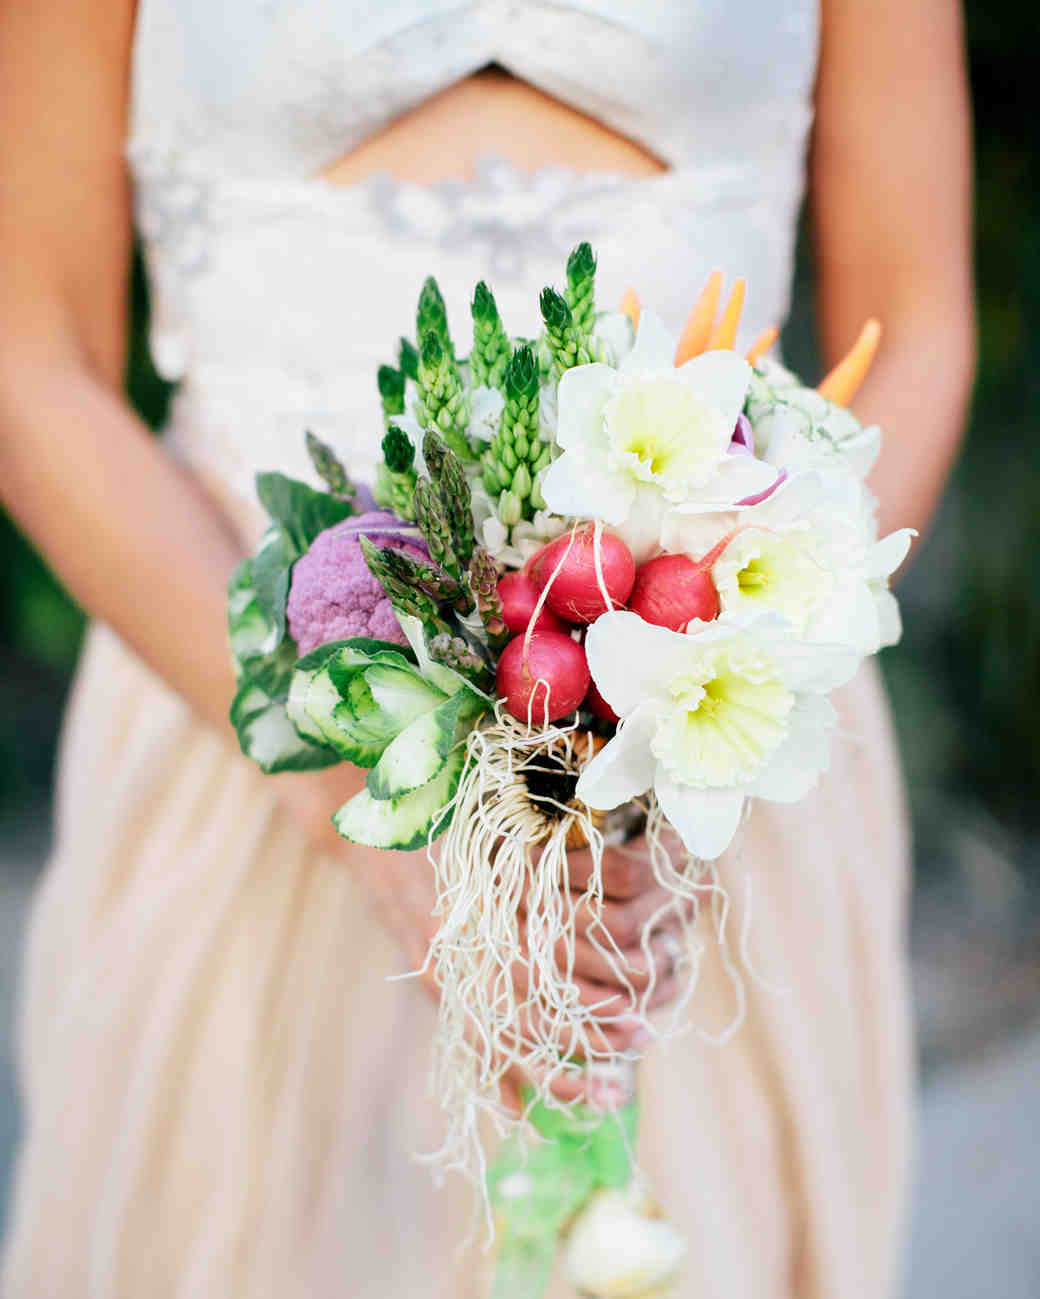 Ideas For Wedding Flowers: Unique Non-Floral Wedding Bouquet Ideas